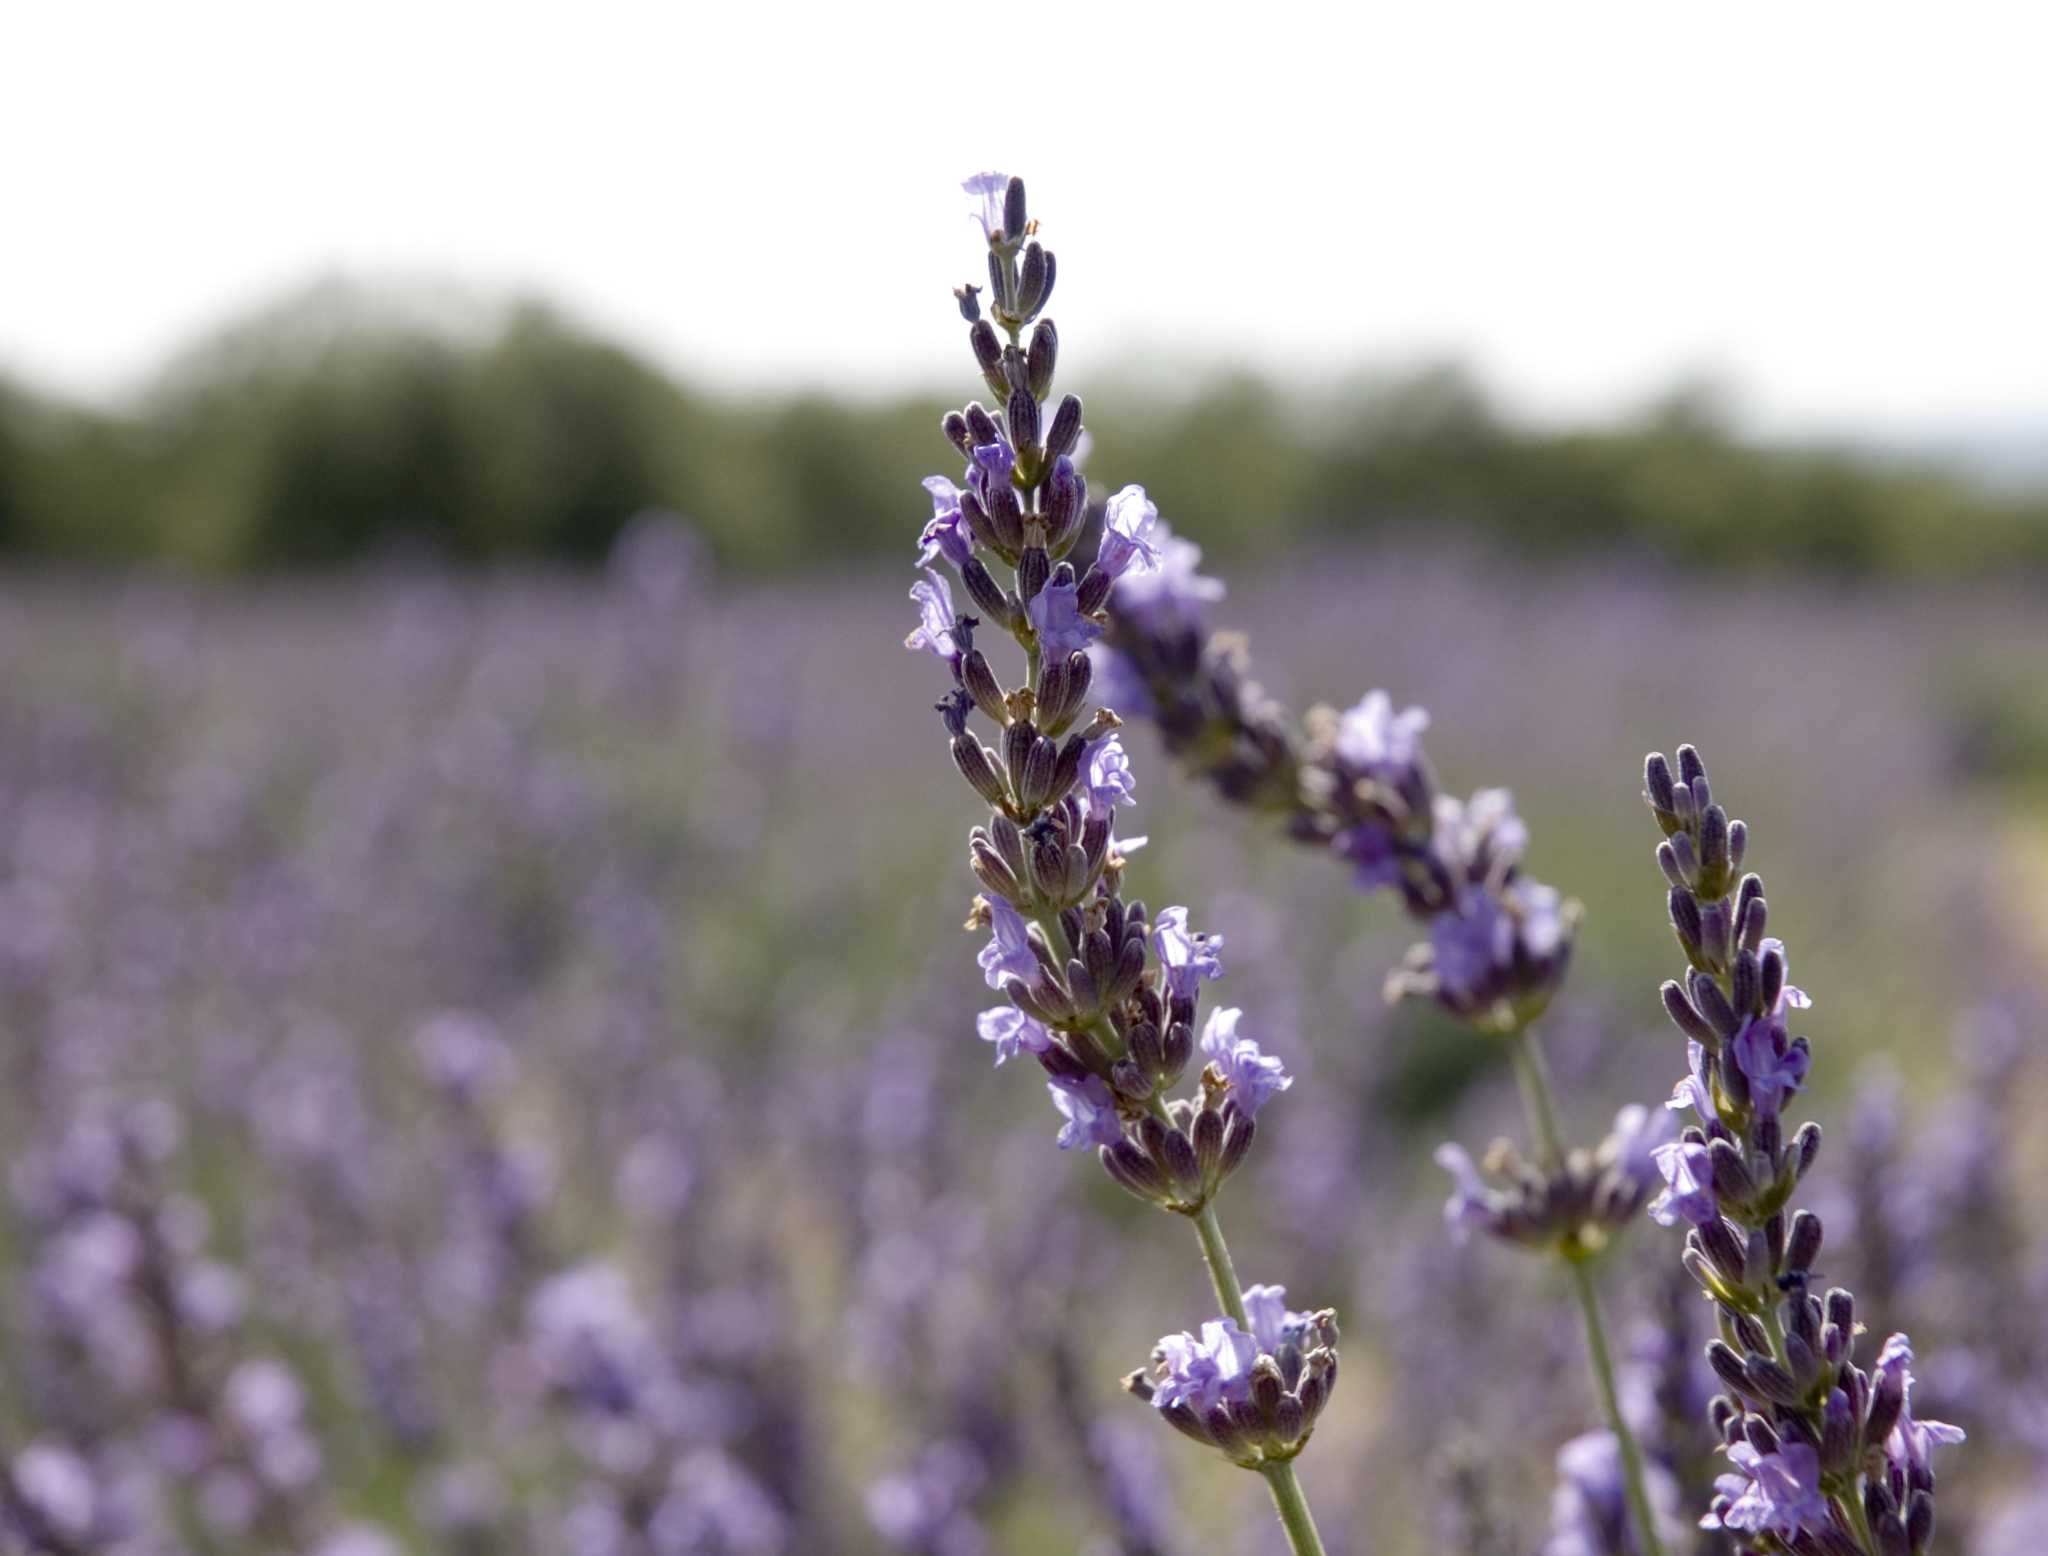 'Serene and beautiful' lavender, bluebonnet festival is happening in March near San Antonio